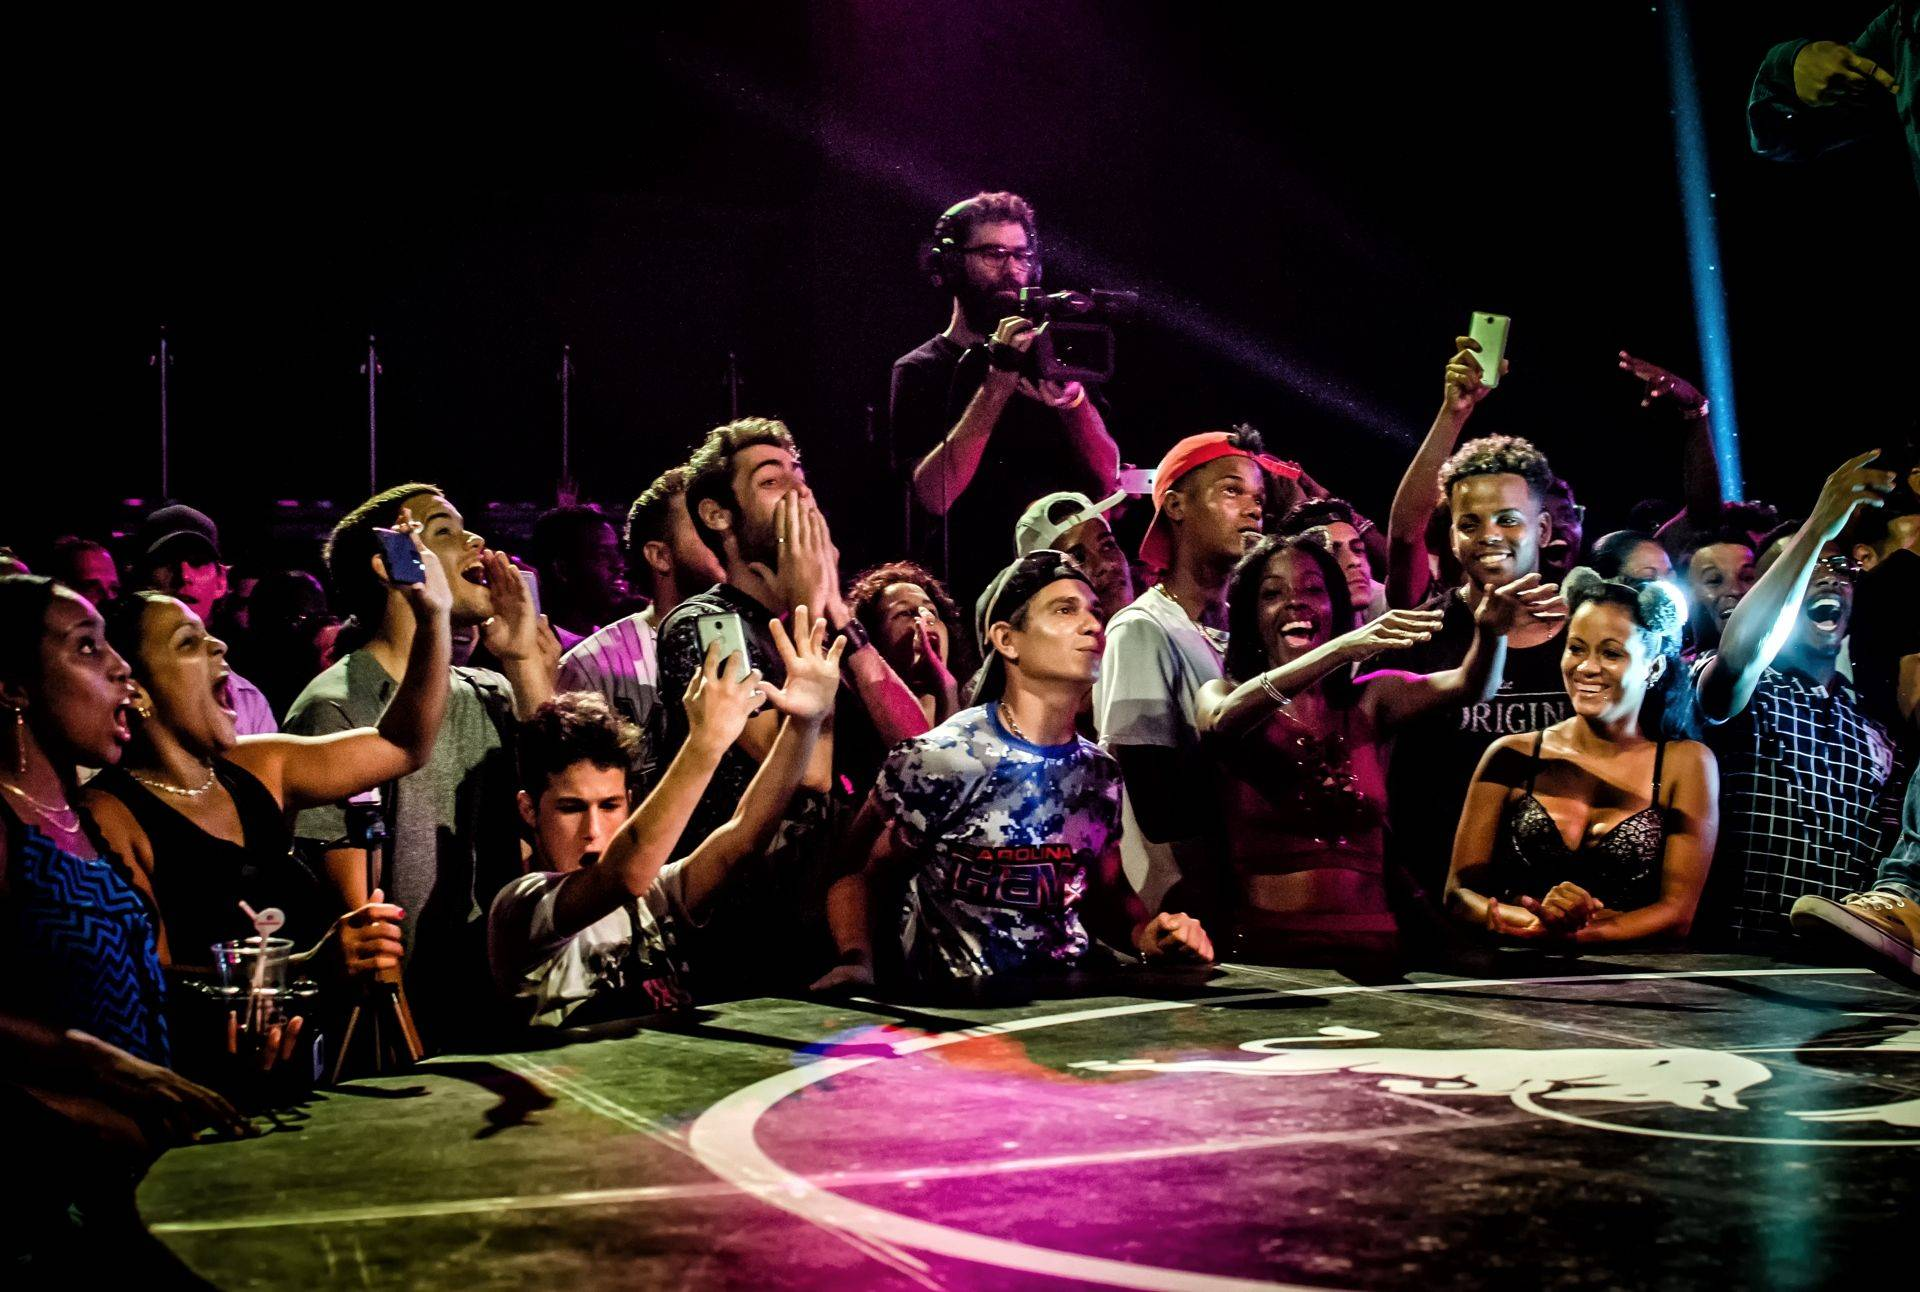 Final Nacional de la Red Bull Batalla De los Gallos, Cuba 2018. Foto: Kako Escalona / Magazine AM:PM.